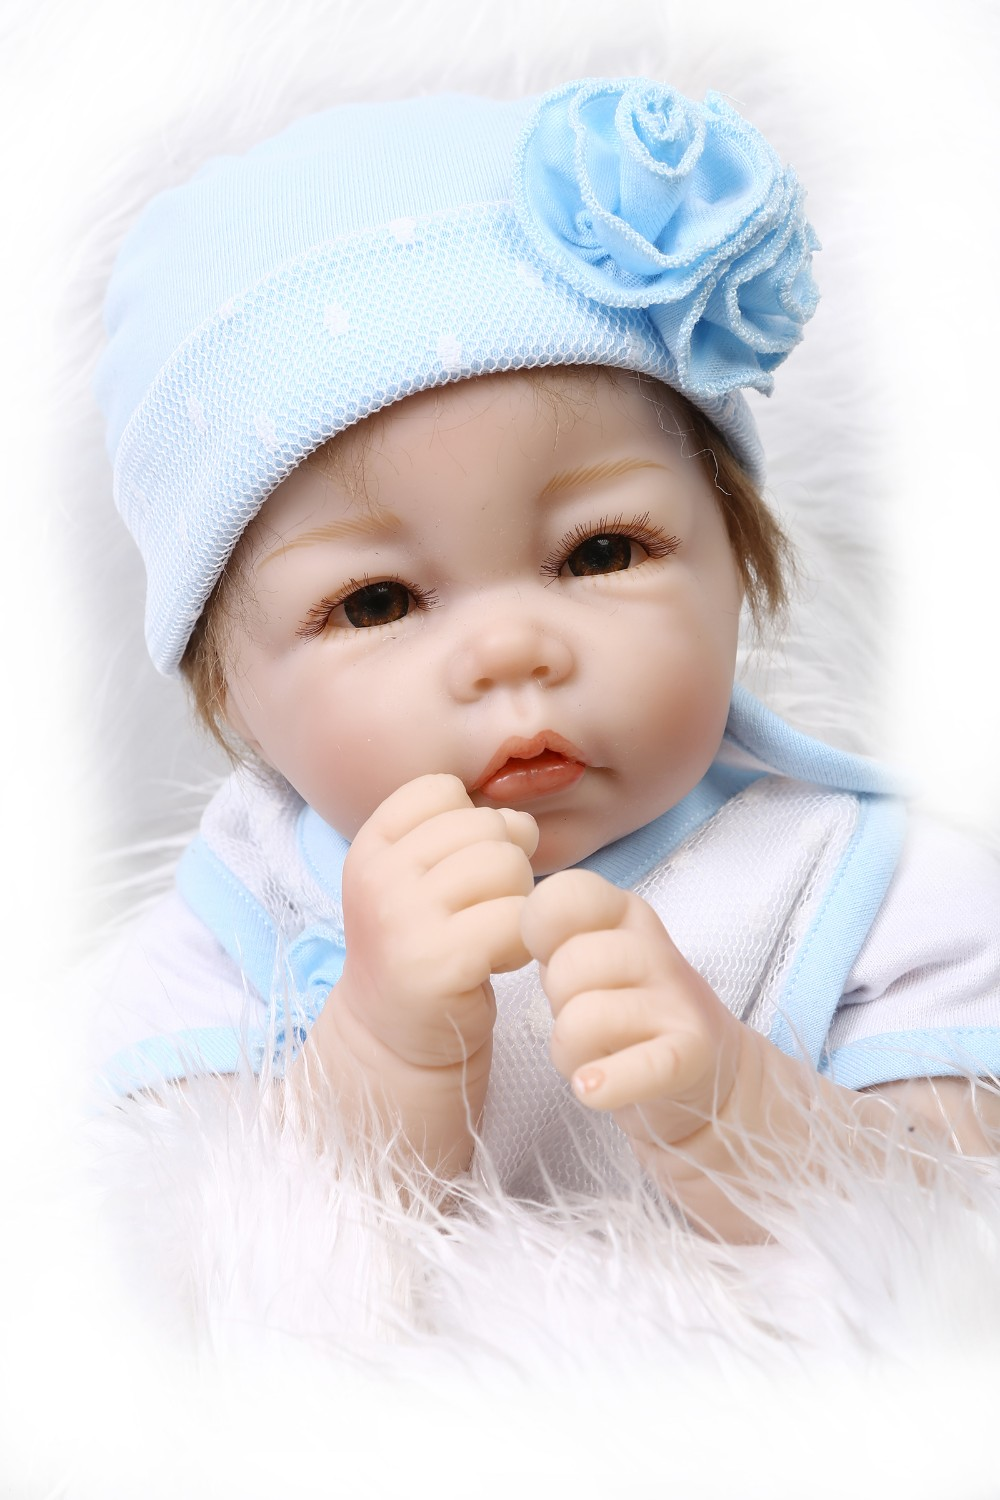 wholesale22inch haft soft body doll reborn baby doll educational doll lifelike soft silicone vinyl real gentle touch